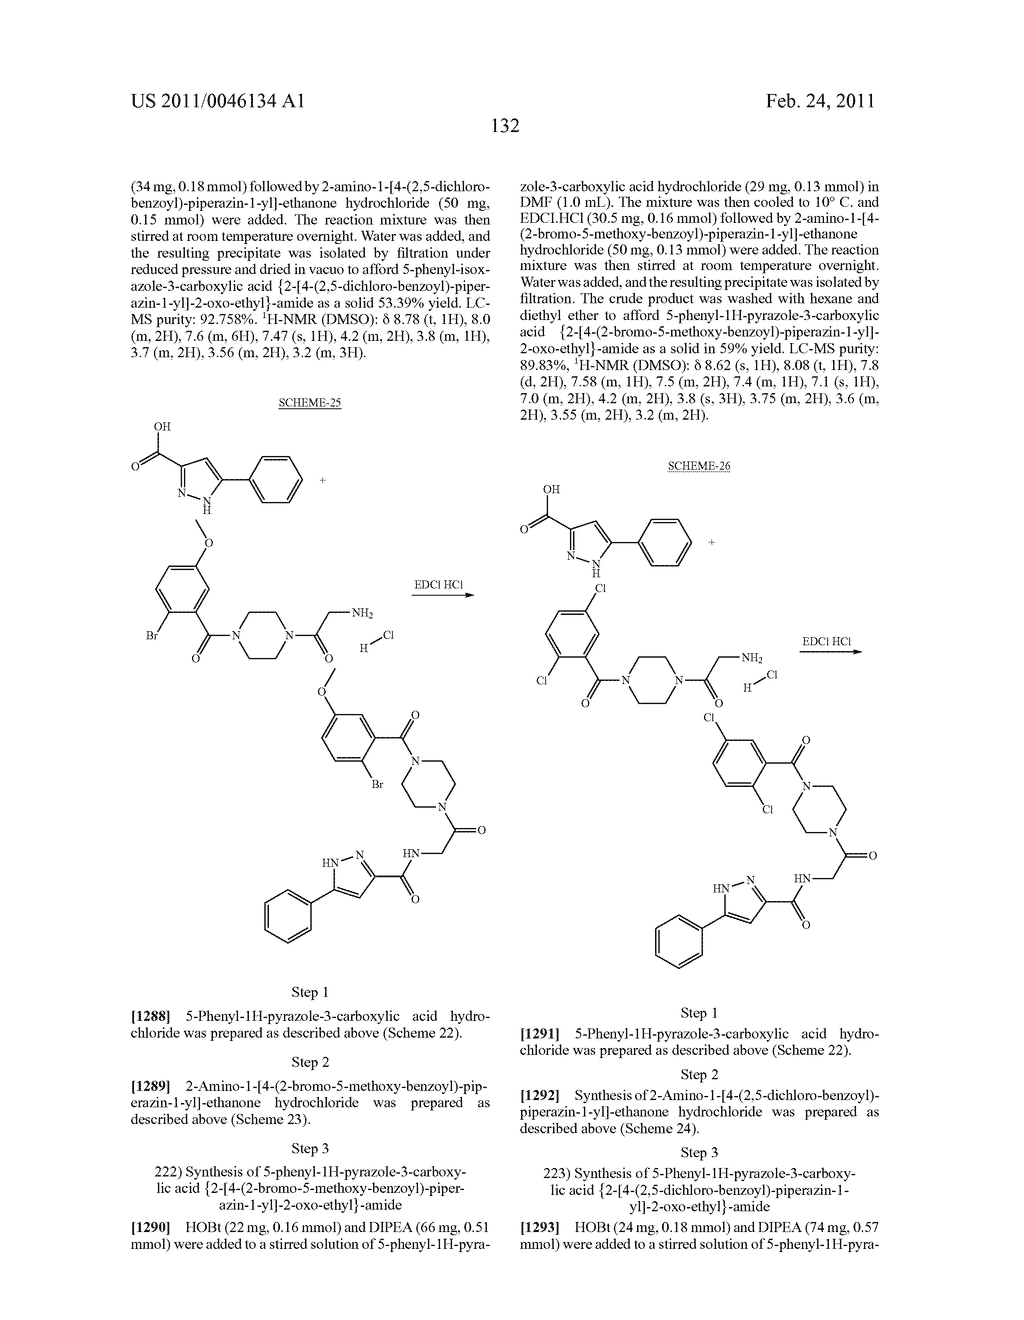 NOVEL PIPERAZINE DERIVATIVES AS INHIBITORS OF STEAROYL-CoA DESATURASE - diagram, schematic, and image 133